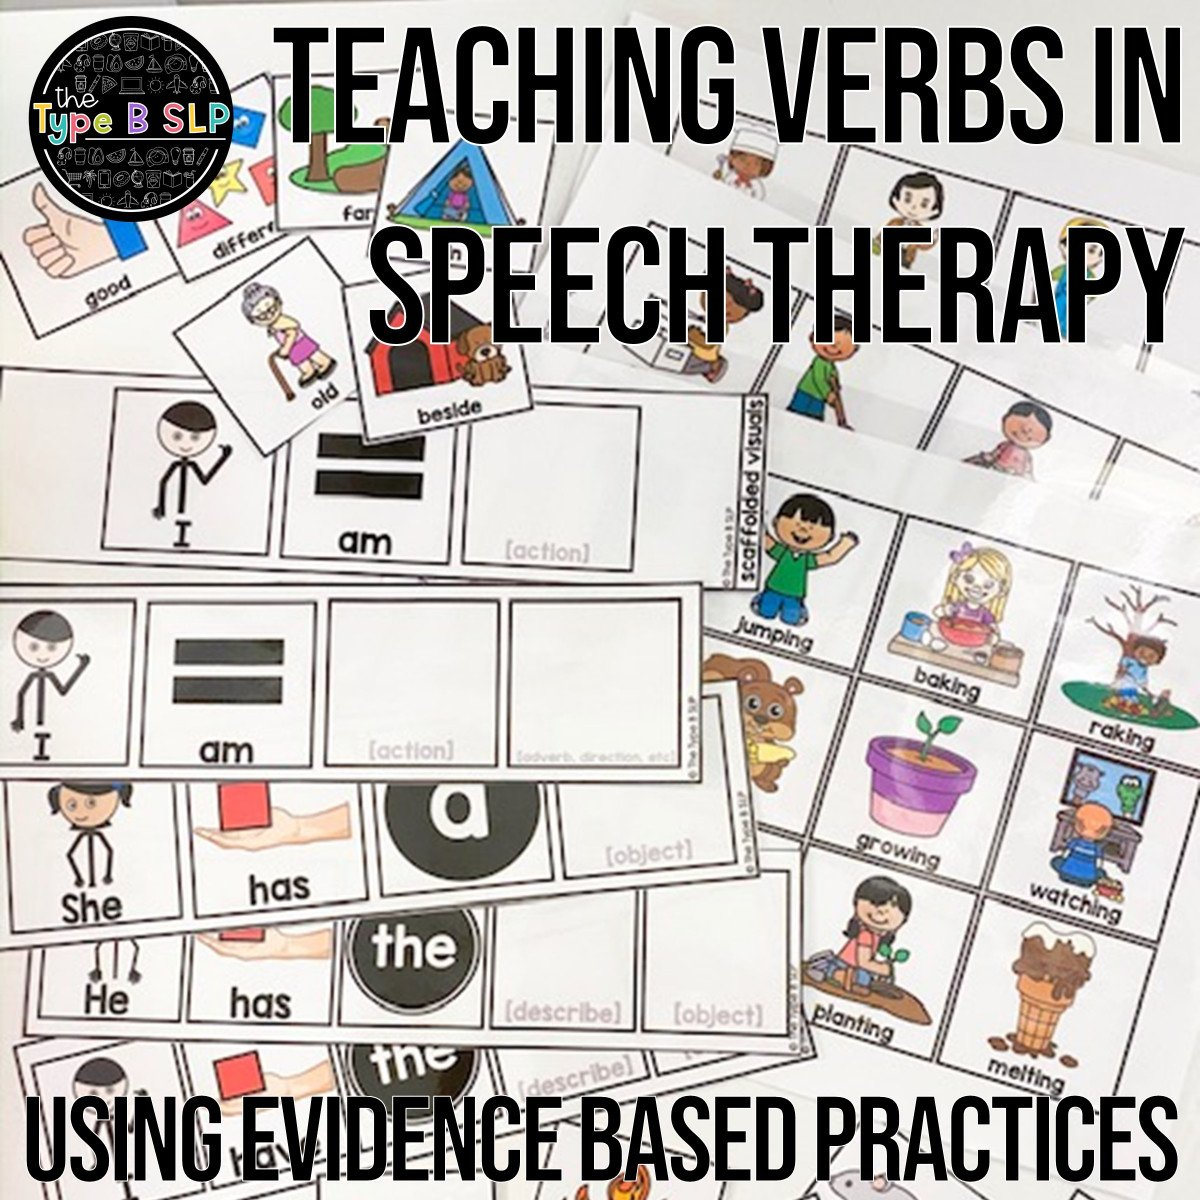 Teaching Verbs in Speech Therapy: MORE, Not Less